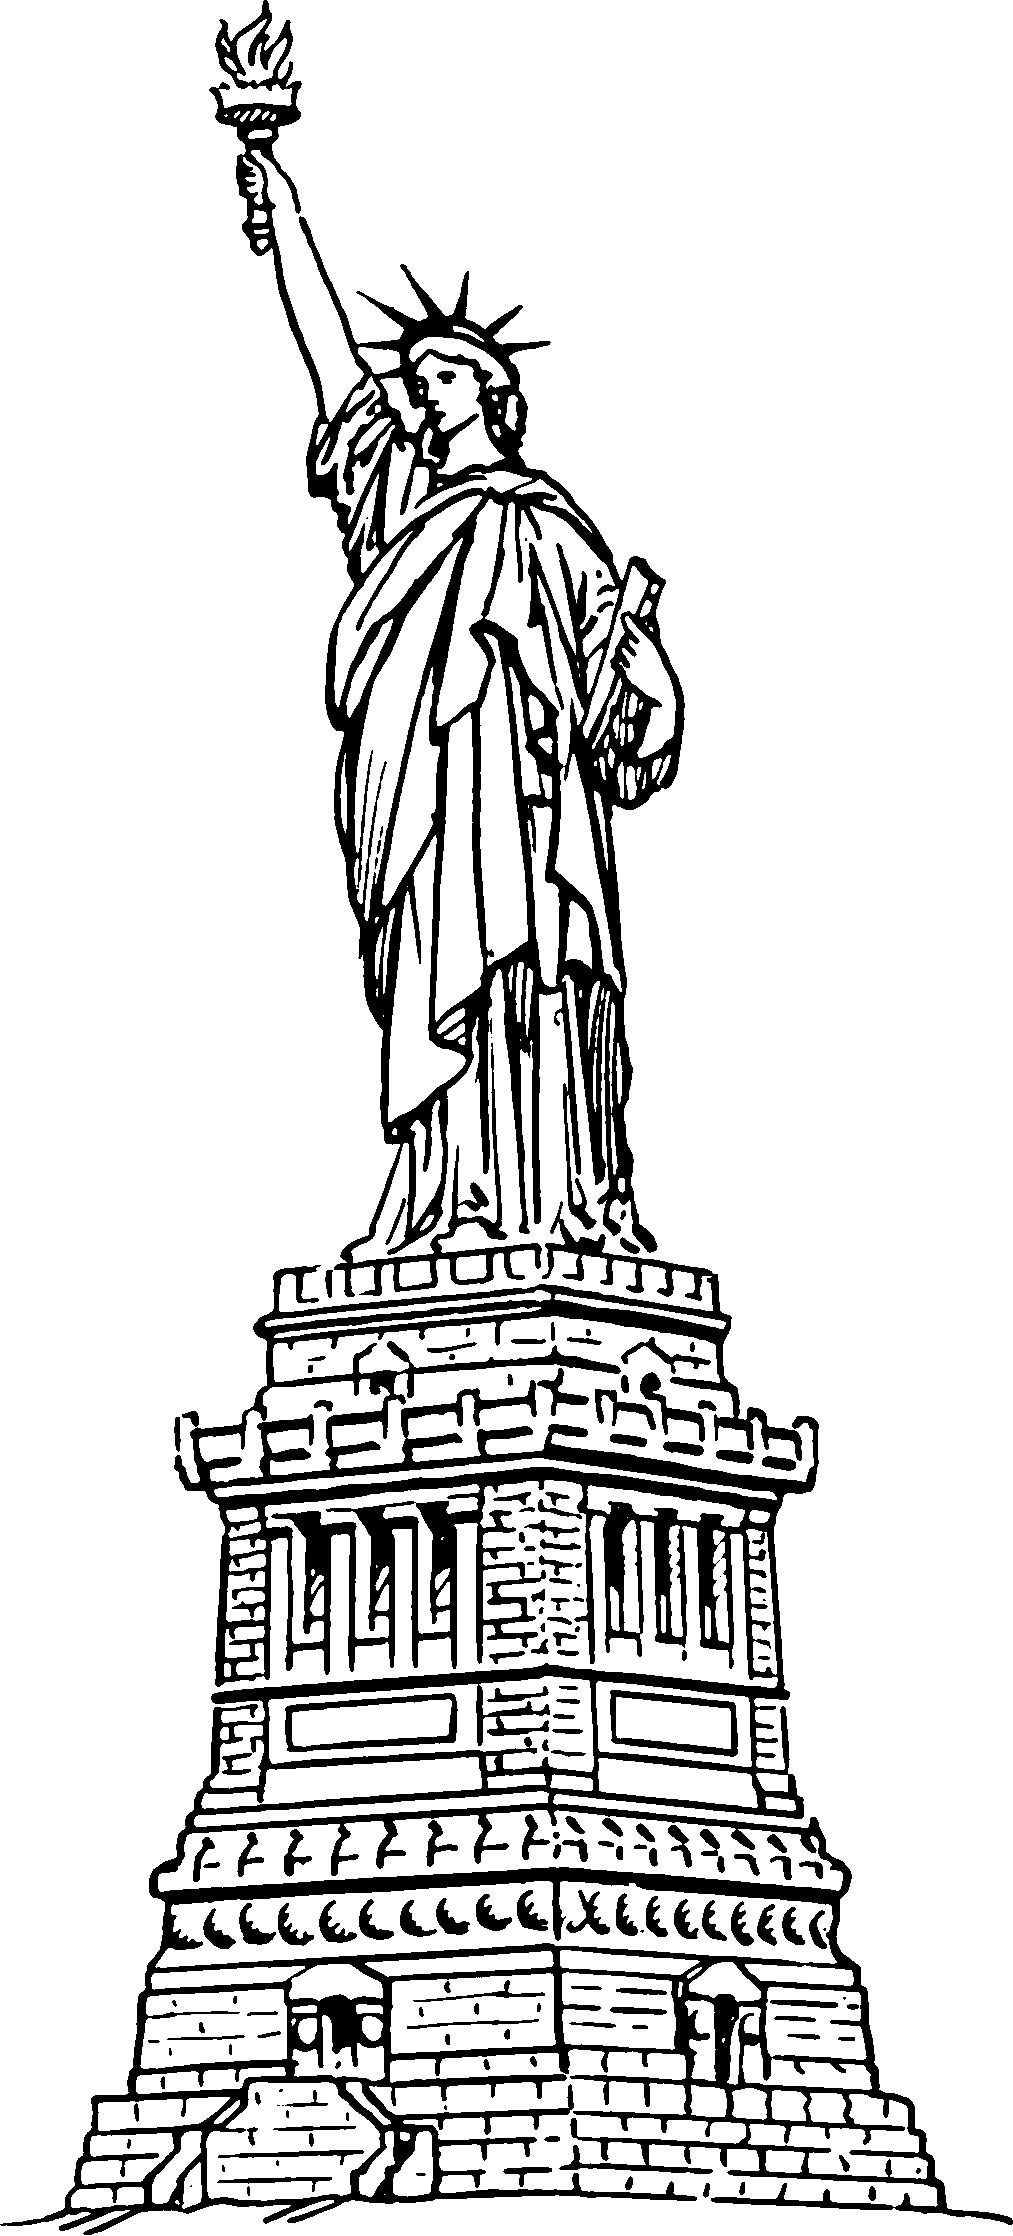 Free Printable Statue Of Liberty Coloring Pages For Kids Statue Of Liberty Coloring Pages